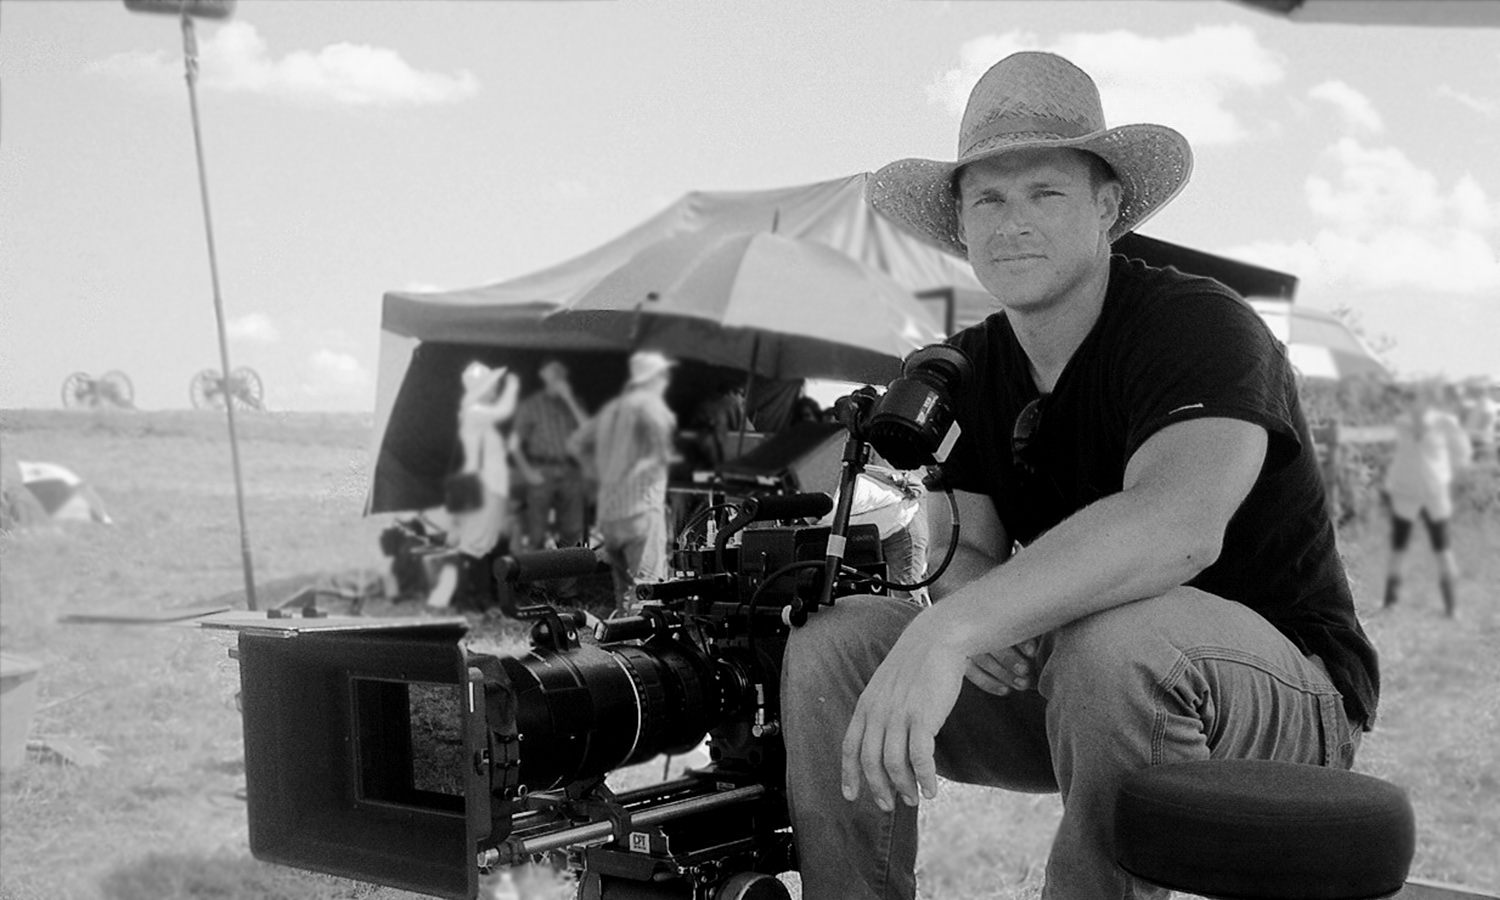 "ERIC HURT - WRITER, DIRECTOR, CINEMATOGRAPHERRecent winner of the International Cinematographers Guild ""Emerging Cinematographers Award"", Eric Hurt's passion for film is based squarely in his love of a good story. Hurt's clear vision through his use of imagery, combined with his love for narrative storytelling is what distinguishes his work. He believes that strong and positive collaboration with the entire production team is the basis for a great film.IMDB"